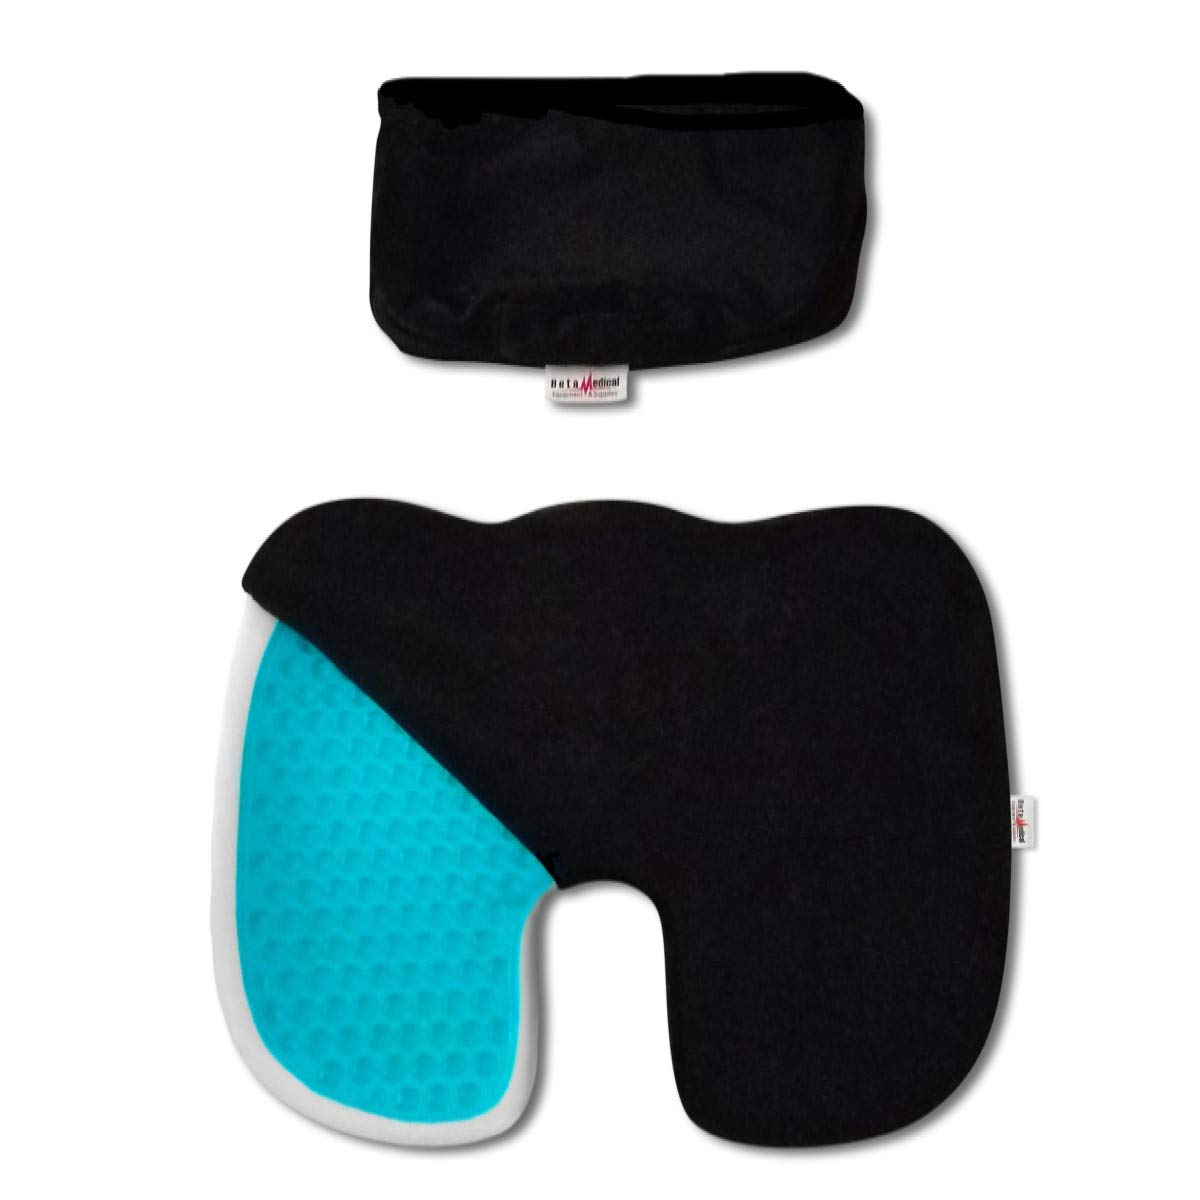 Gel Memory Foam Seat Cushion by BetamedicalES - 2 Seat Covers with Extra Long Zippers - Orthopedic Pain Relief for the Coccyx Tailbone Lower Back and Sciatica - LARGE Office Chair and Car Seat Cushion